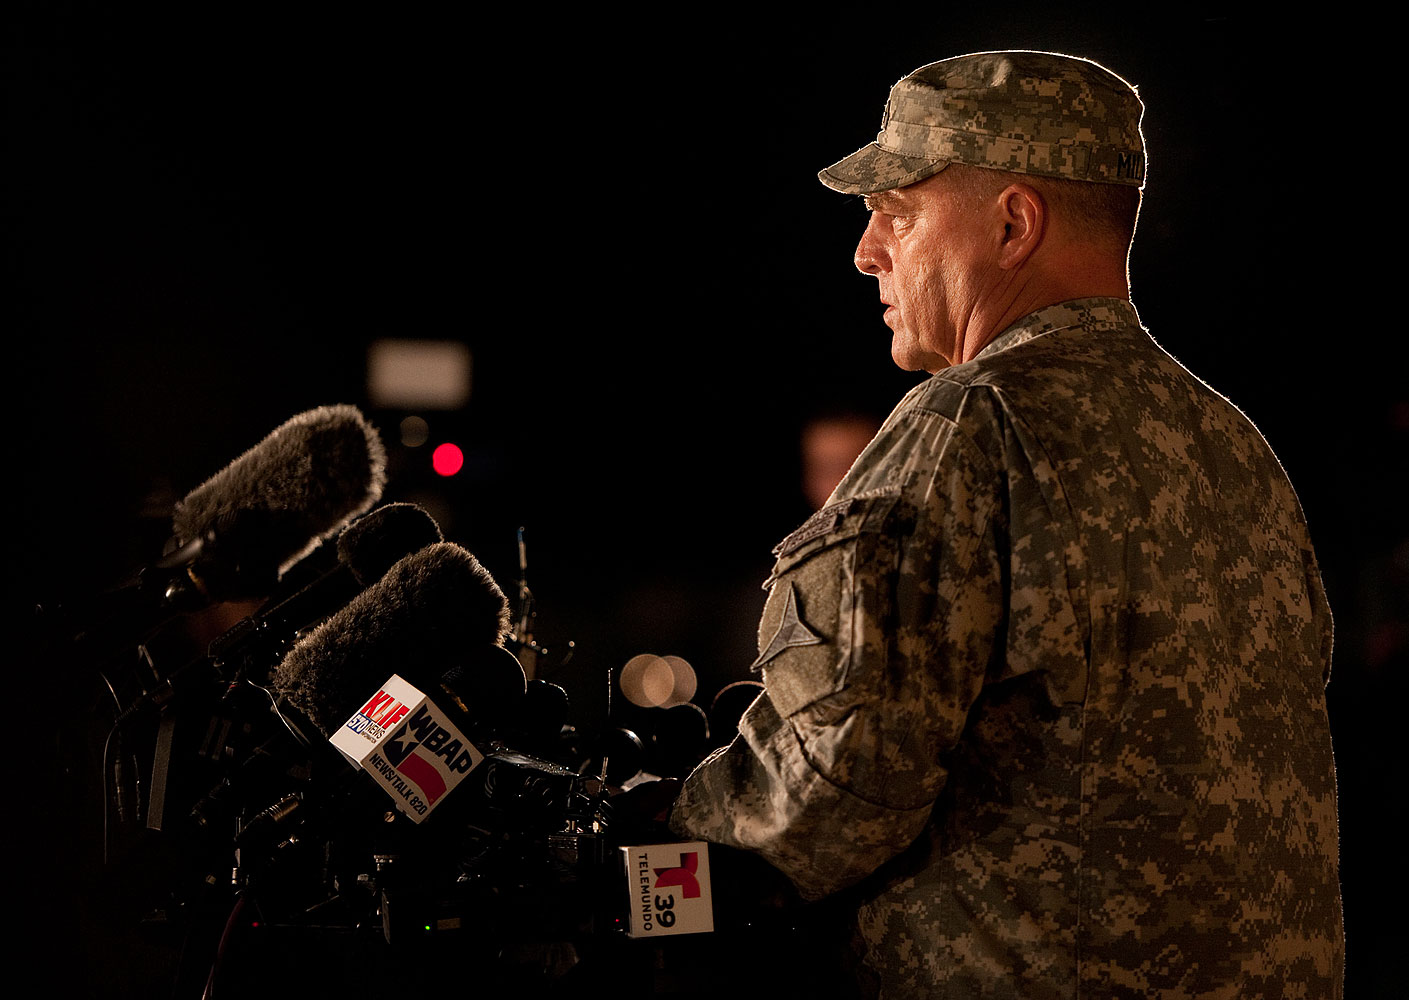 Lt. Gen. Mark Mileey, III Corps and Fort Hood commanding general addresses news media at Fort Hood military base near Killeen, Texas, April 2 2014.